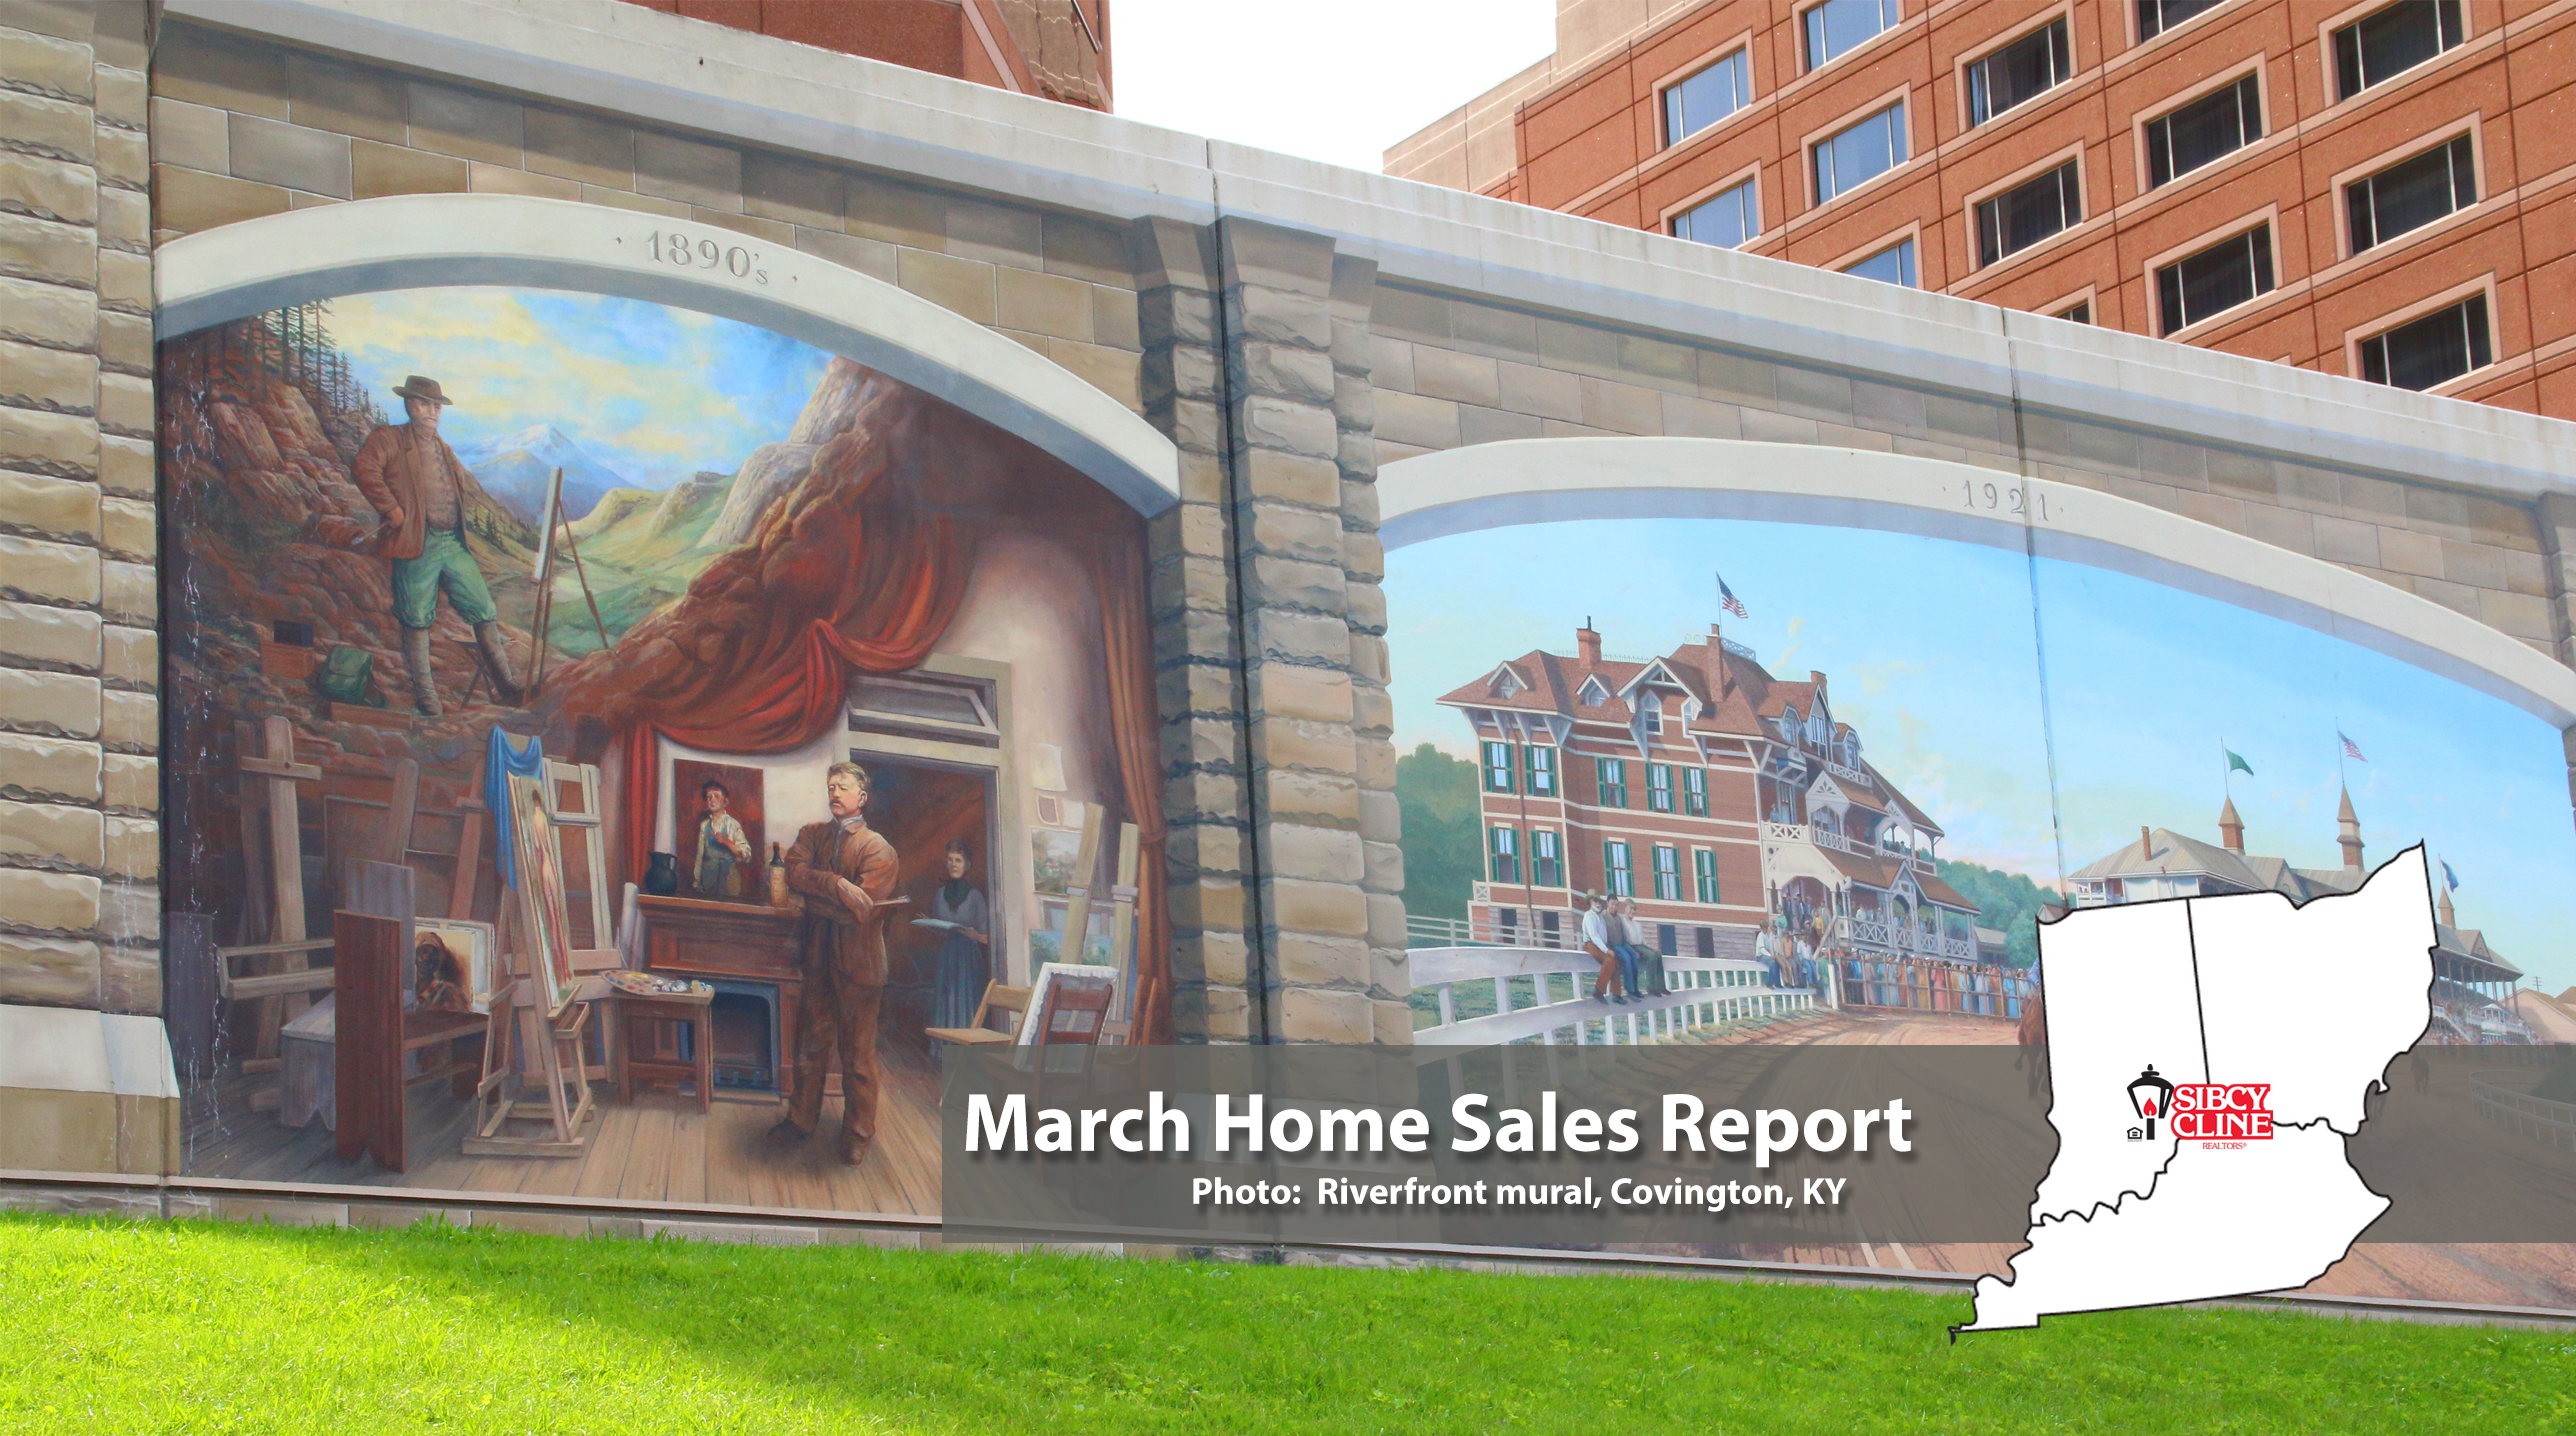 Wondrous March 2019 Home Sales Report For Cincinnati And Dayton Ohio Interior Design Ideas Clesiryabchikinfo